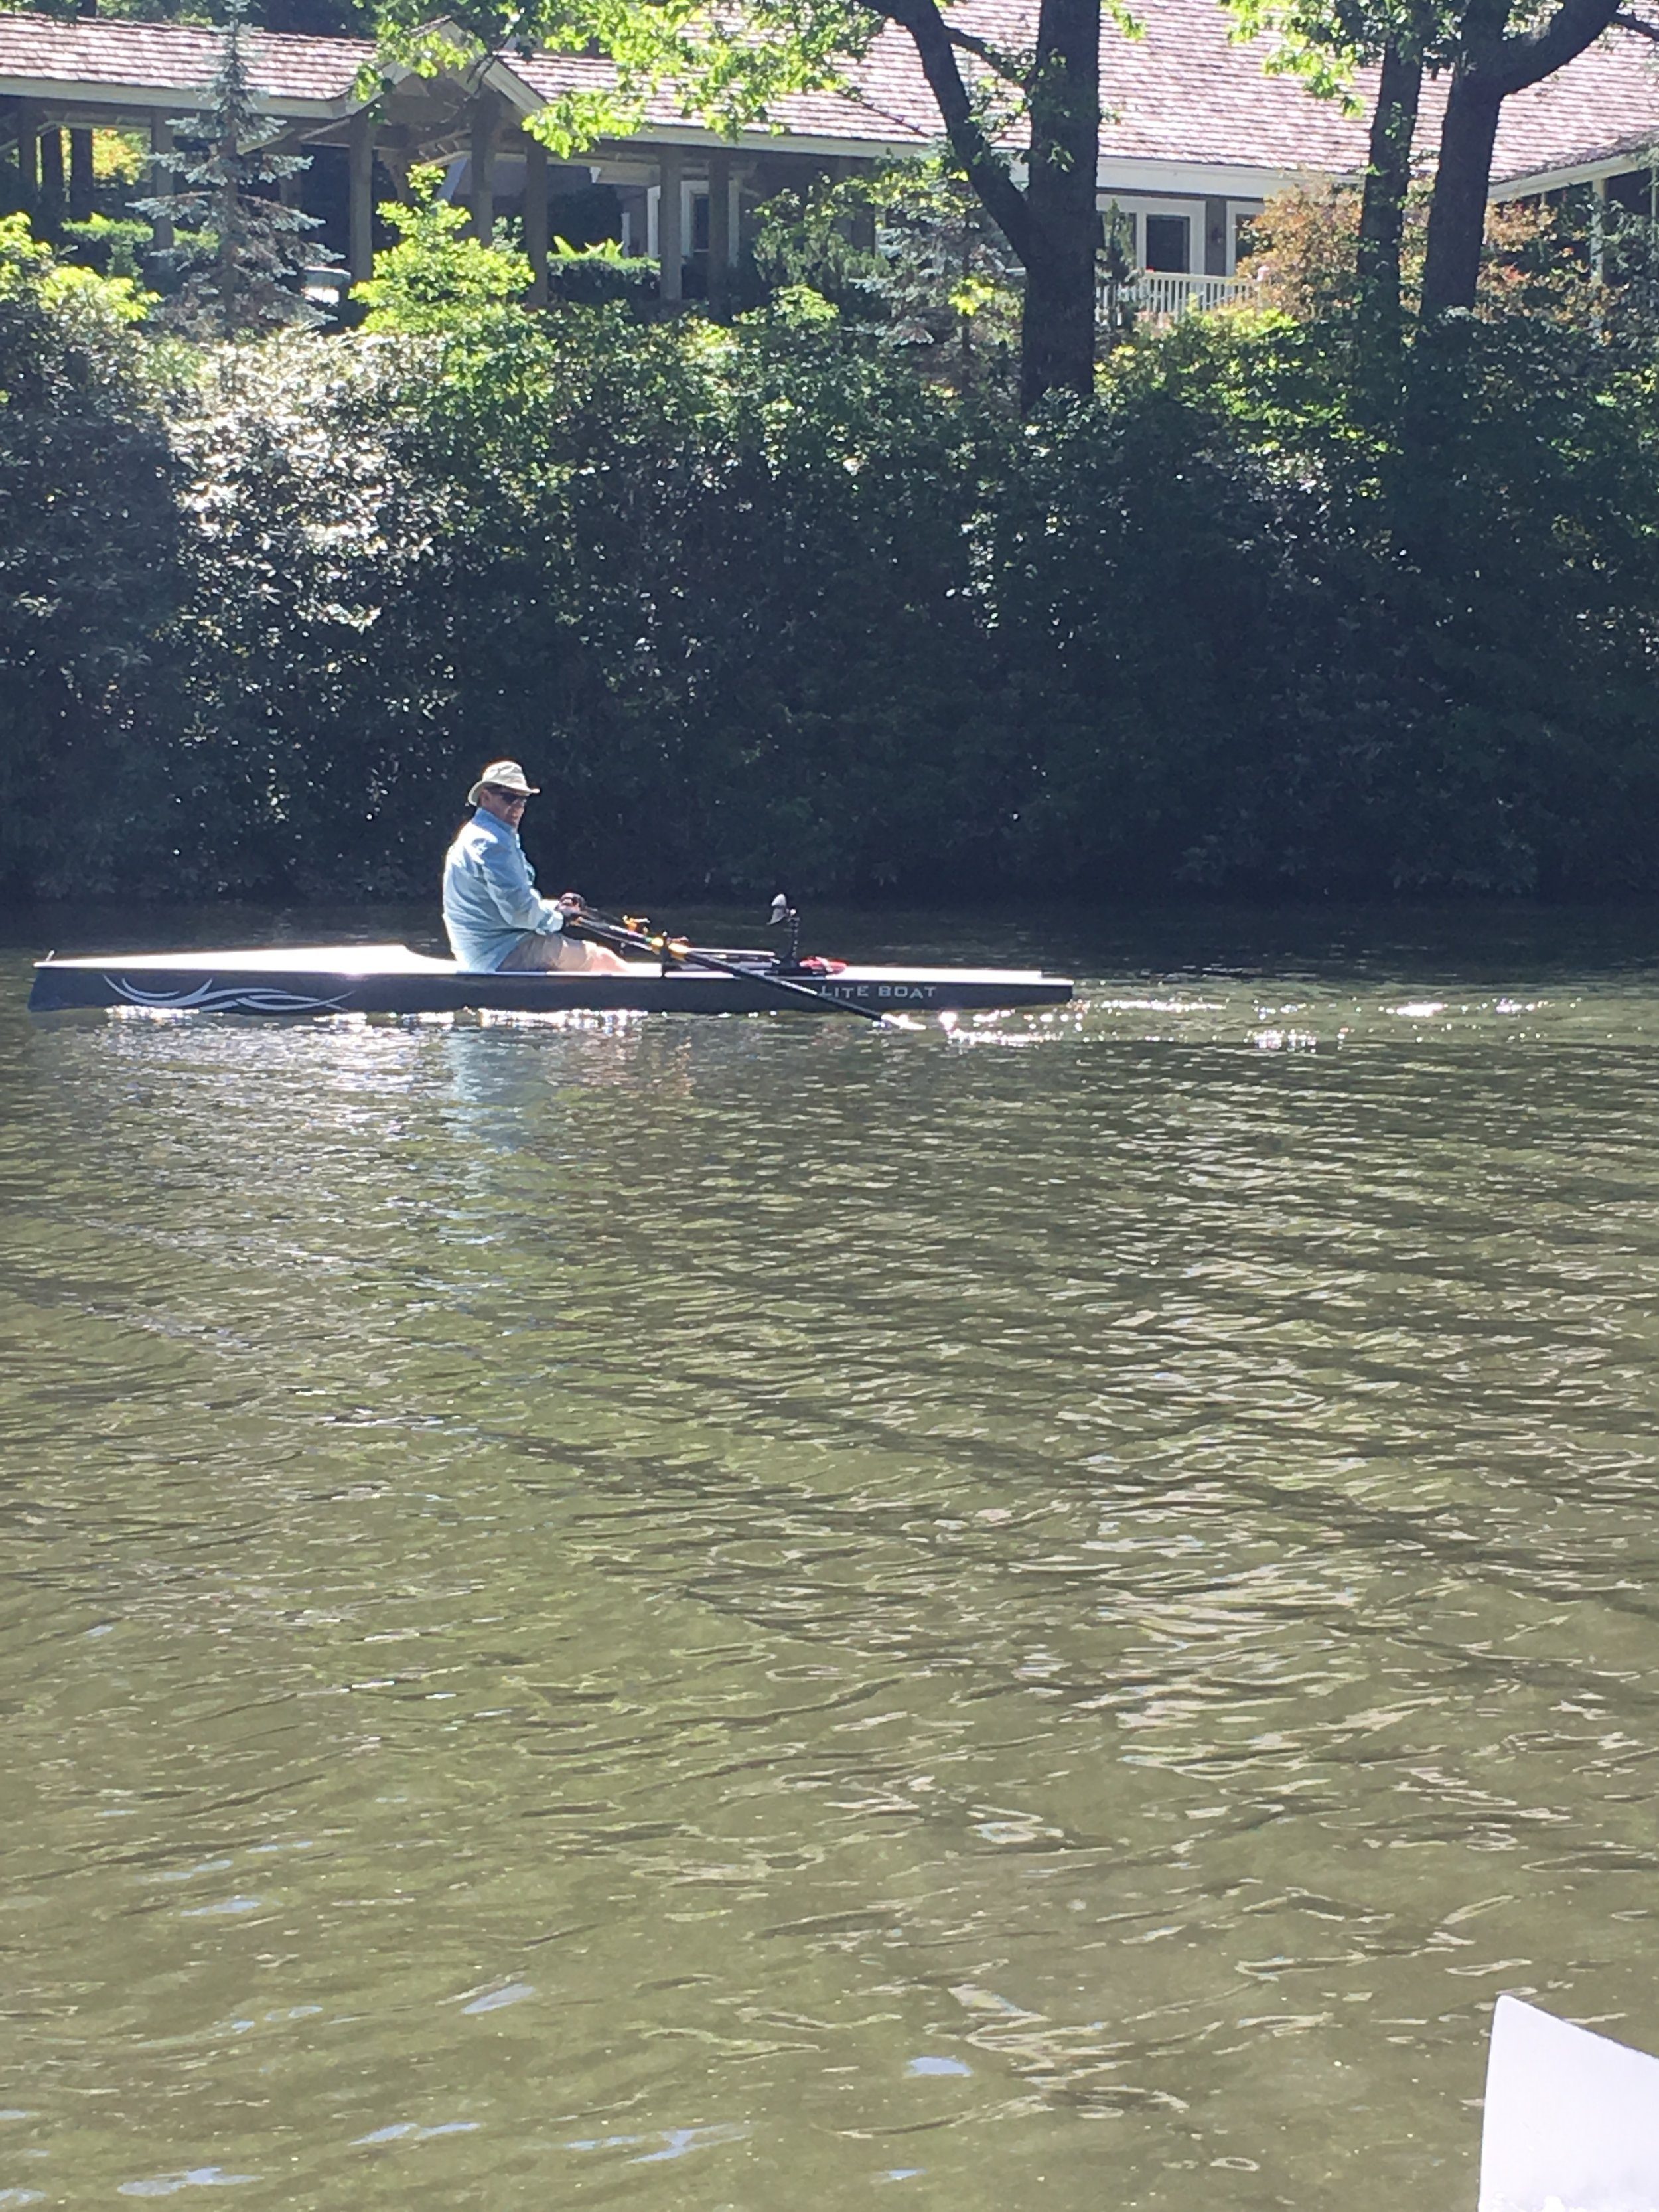 - The second time we rowed on Lake Sequoyah a gentleman joined us to try out rowing a LiteBoat. It was a spectacular day and he really enjoyed it!!